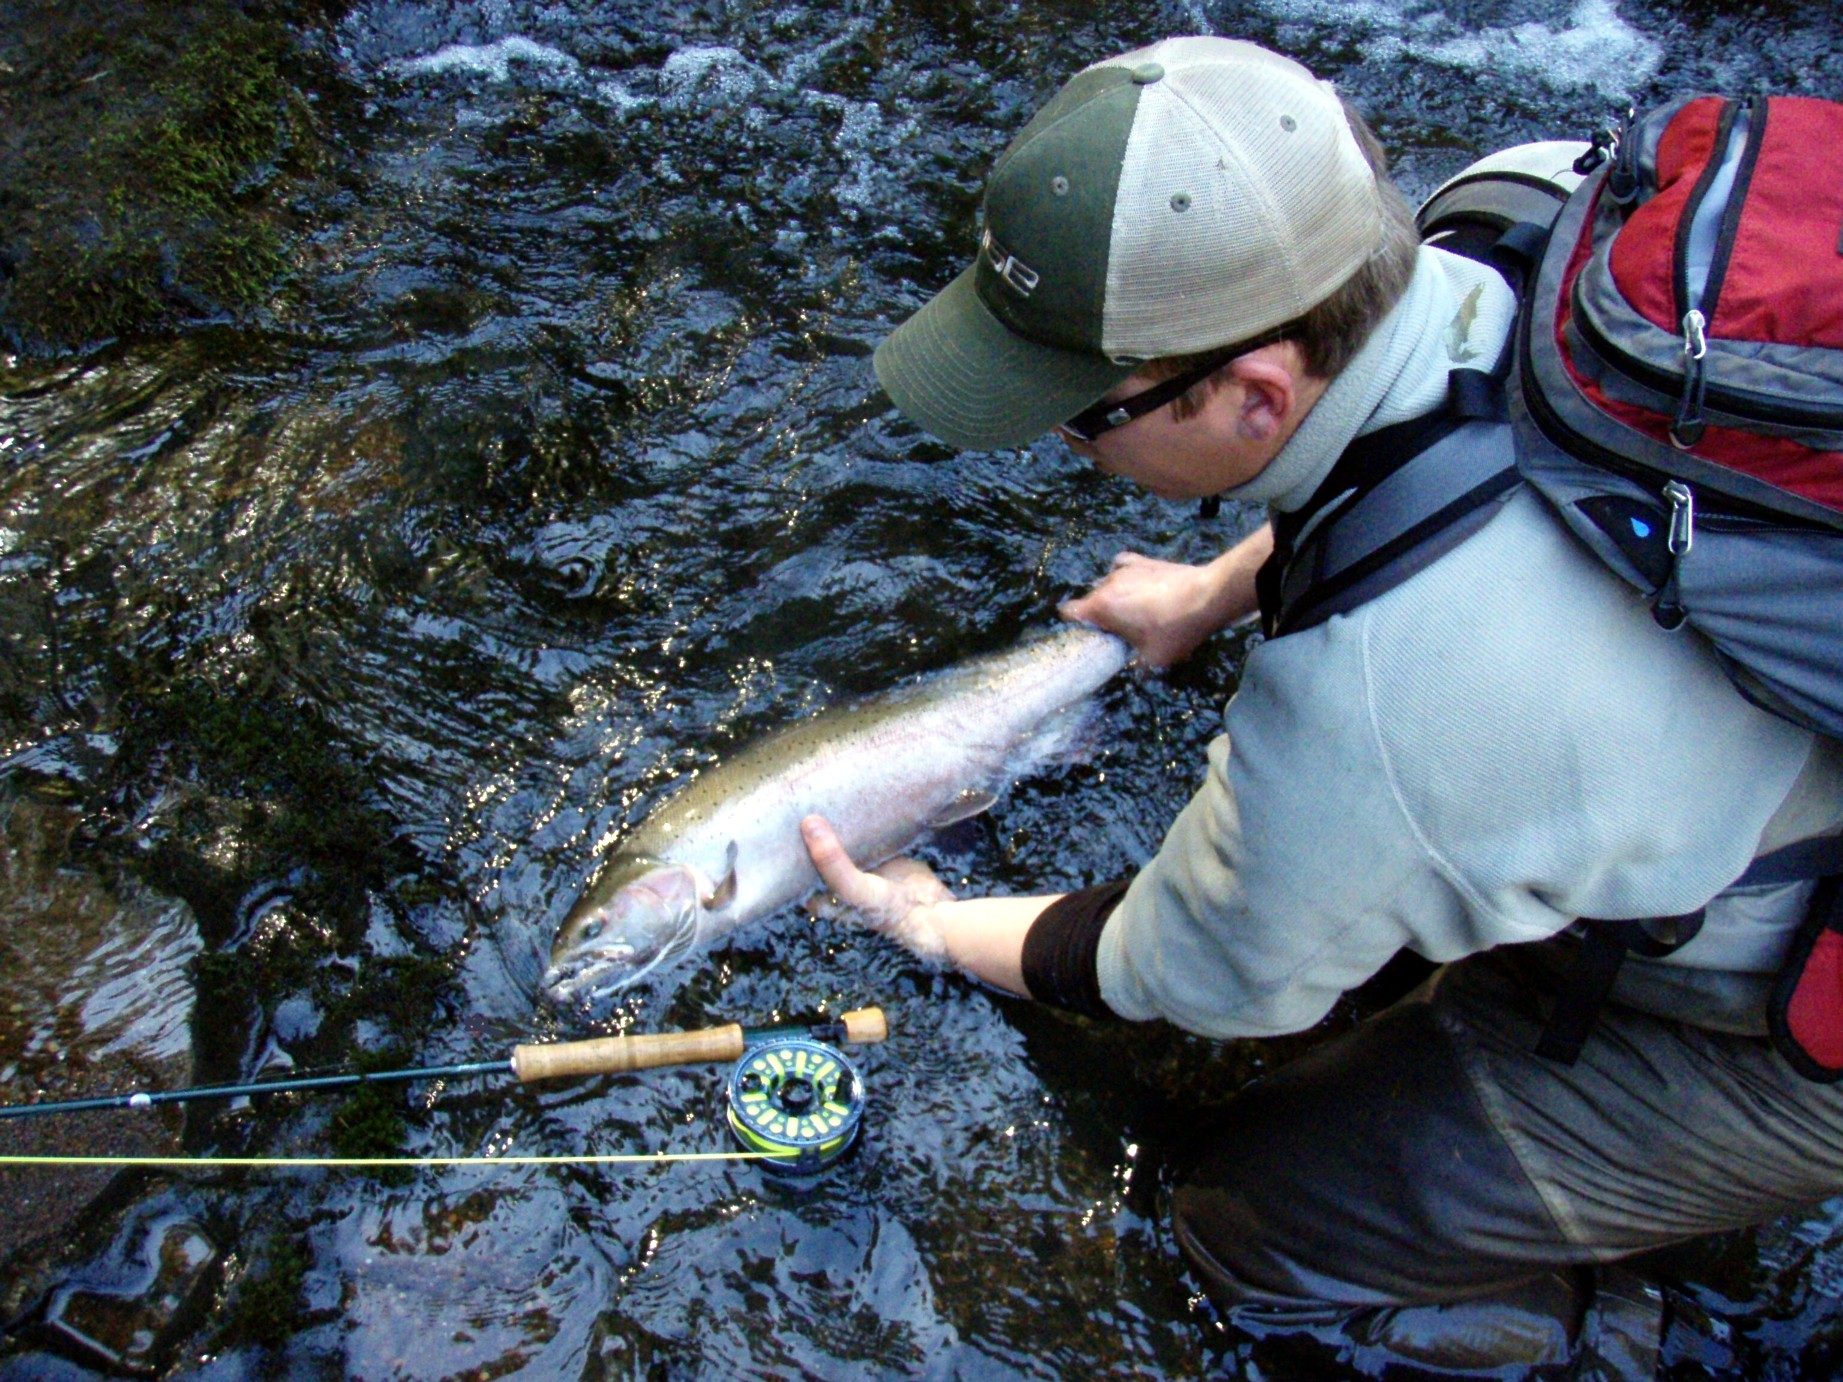 Jason Mariner / Michael Gorman photo / McKenzie River Fishing Guide